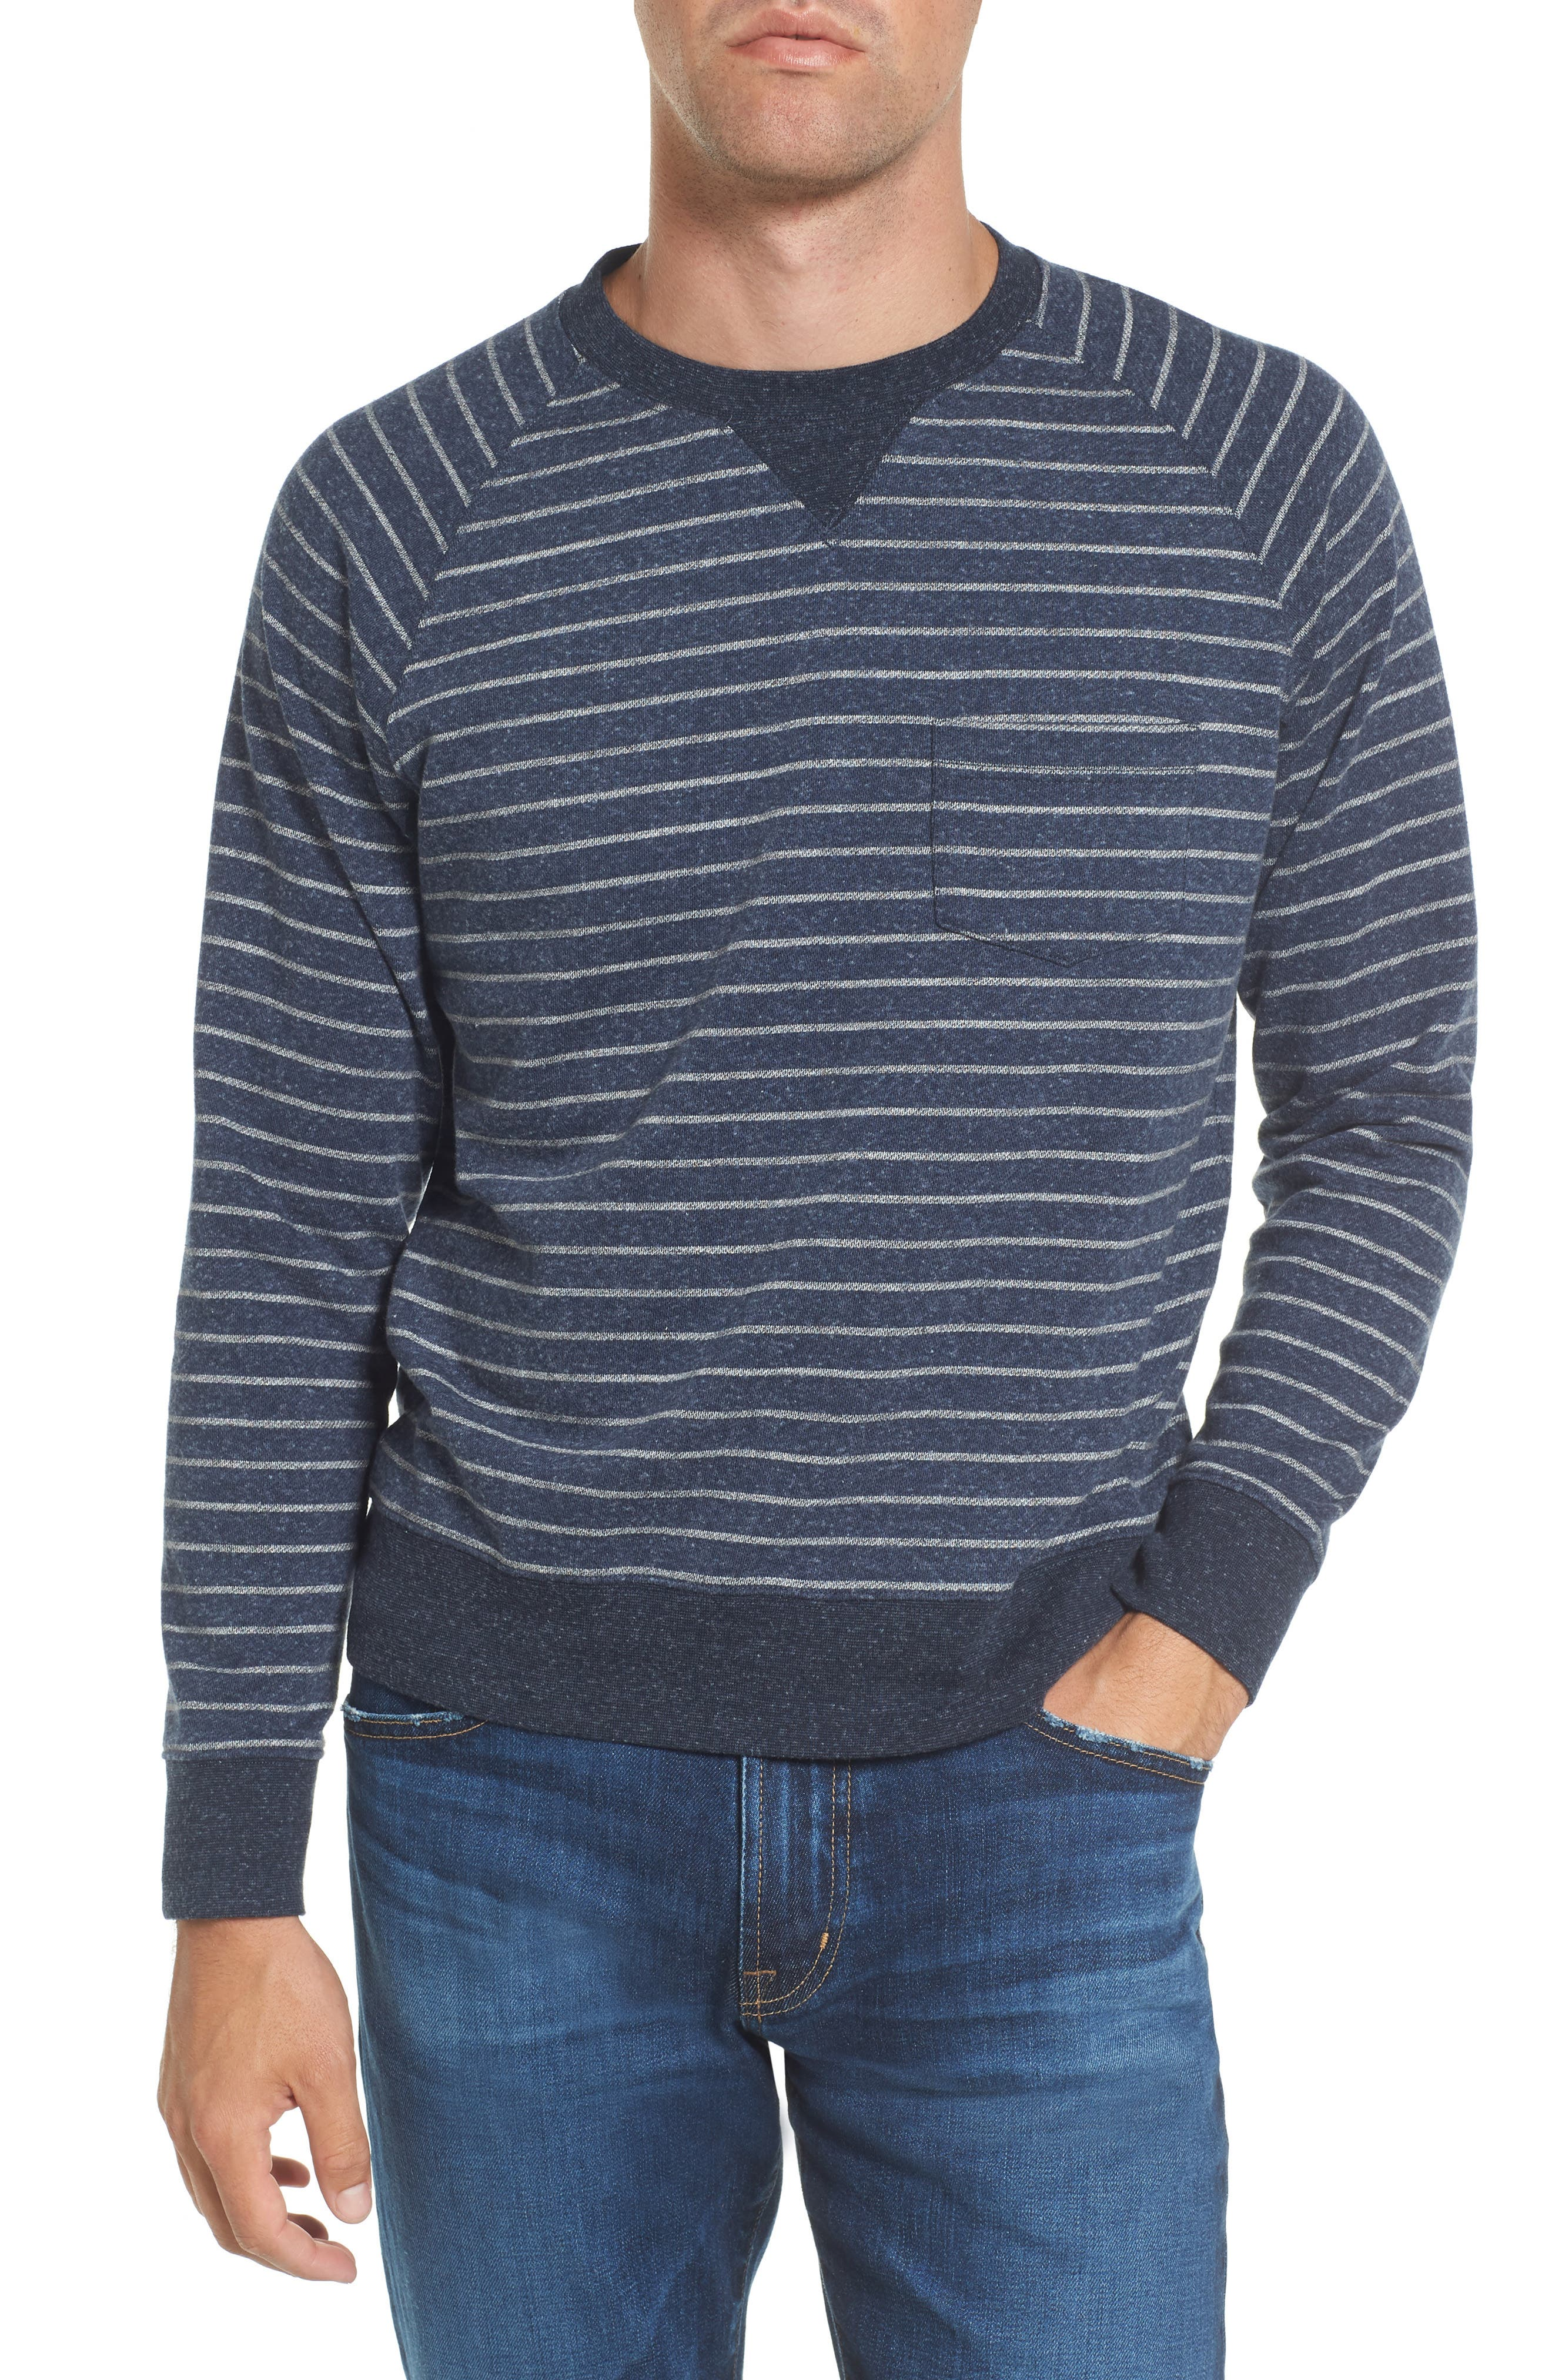 Palmer Modern Fit Athletic Stripe Sweatshirt,                         Main,                         color, Navy/ Gray Heather